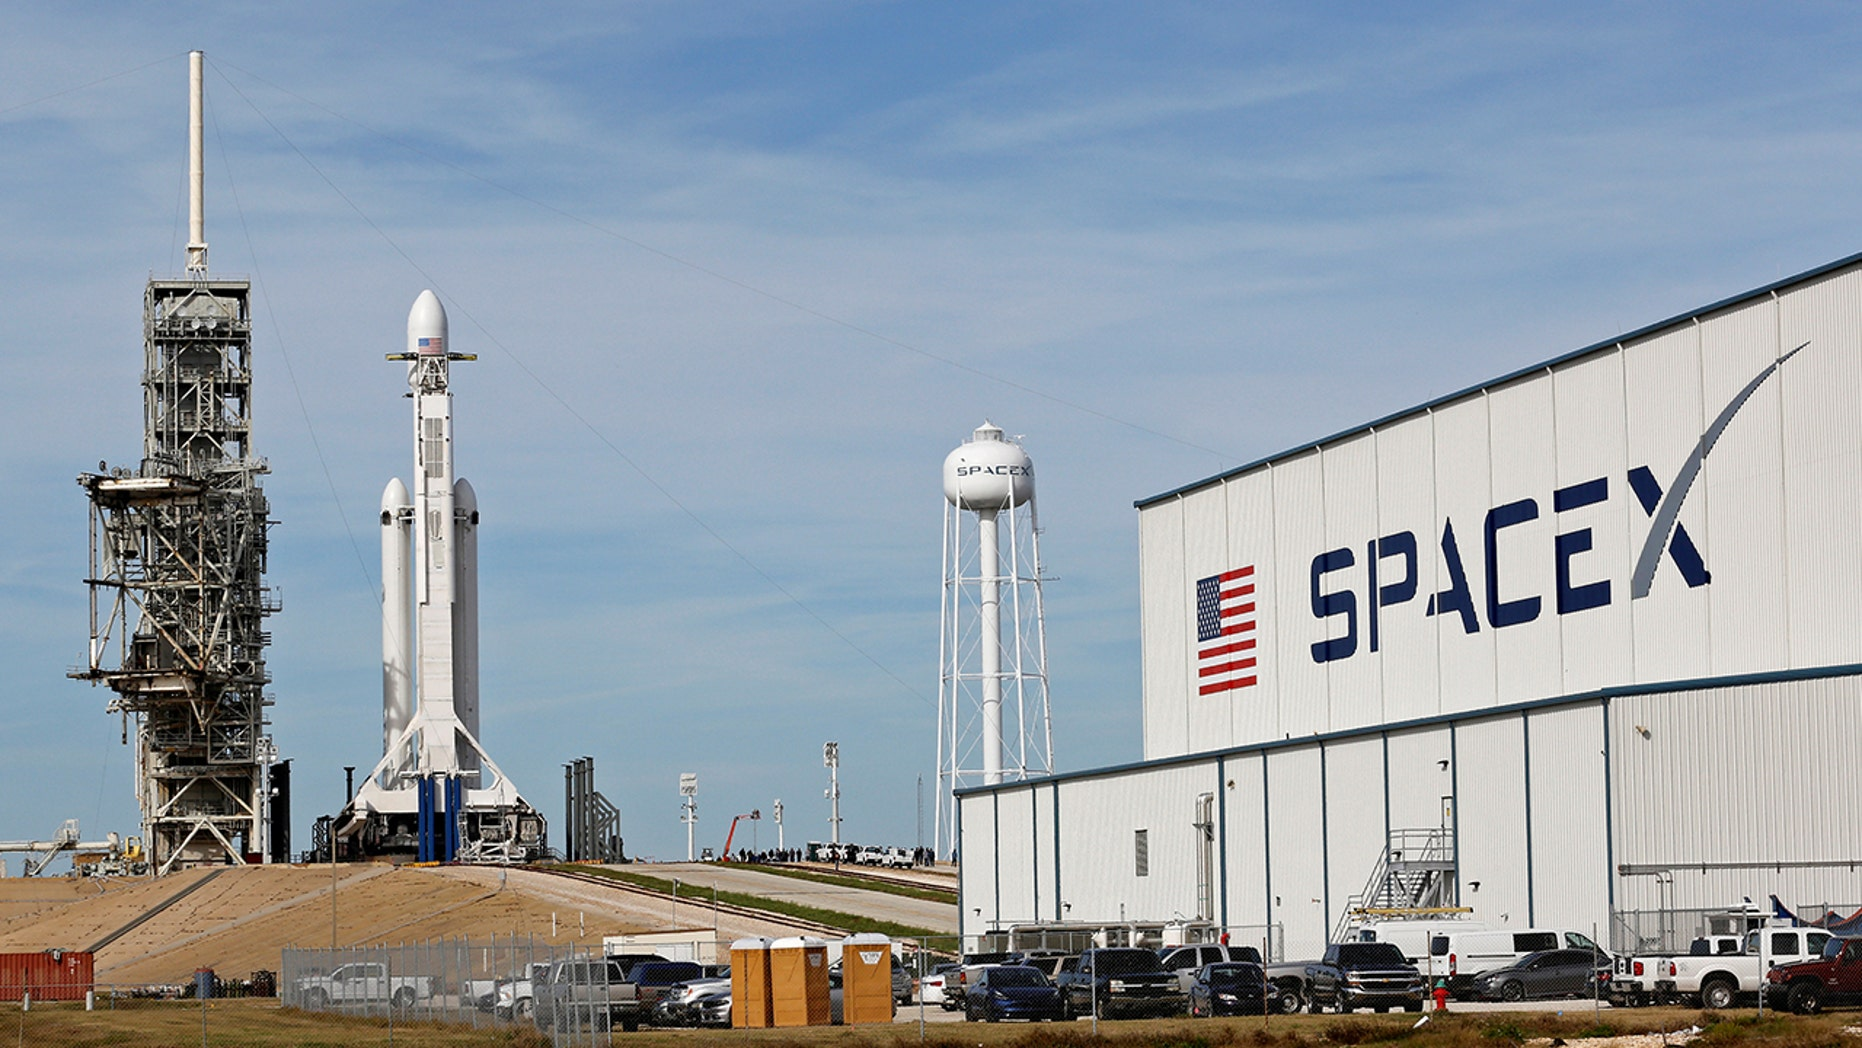 A SpaceX Falcon Heavy rocket stands on historic launch pad 39A as it is readied for its first demonstration flight at the Kennedy Space Center in Cape Canaveral, Fla.